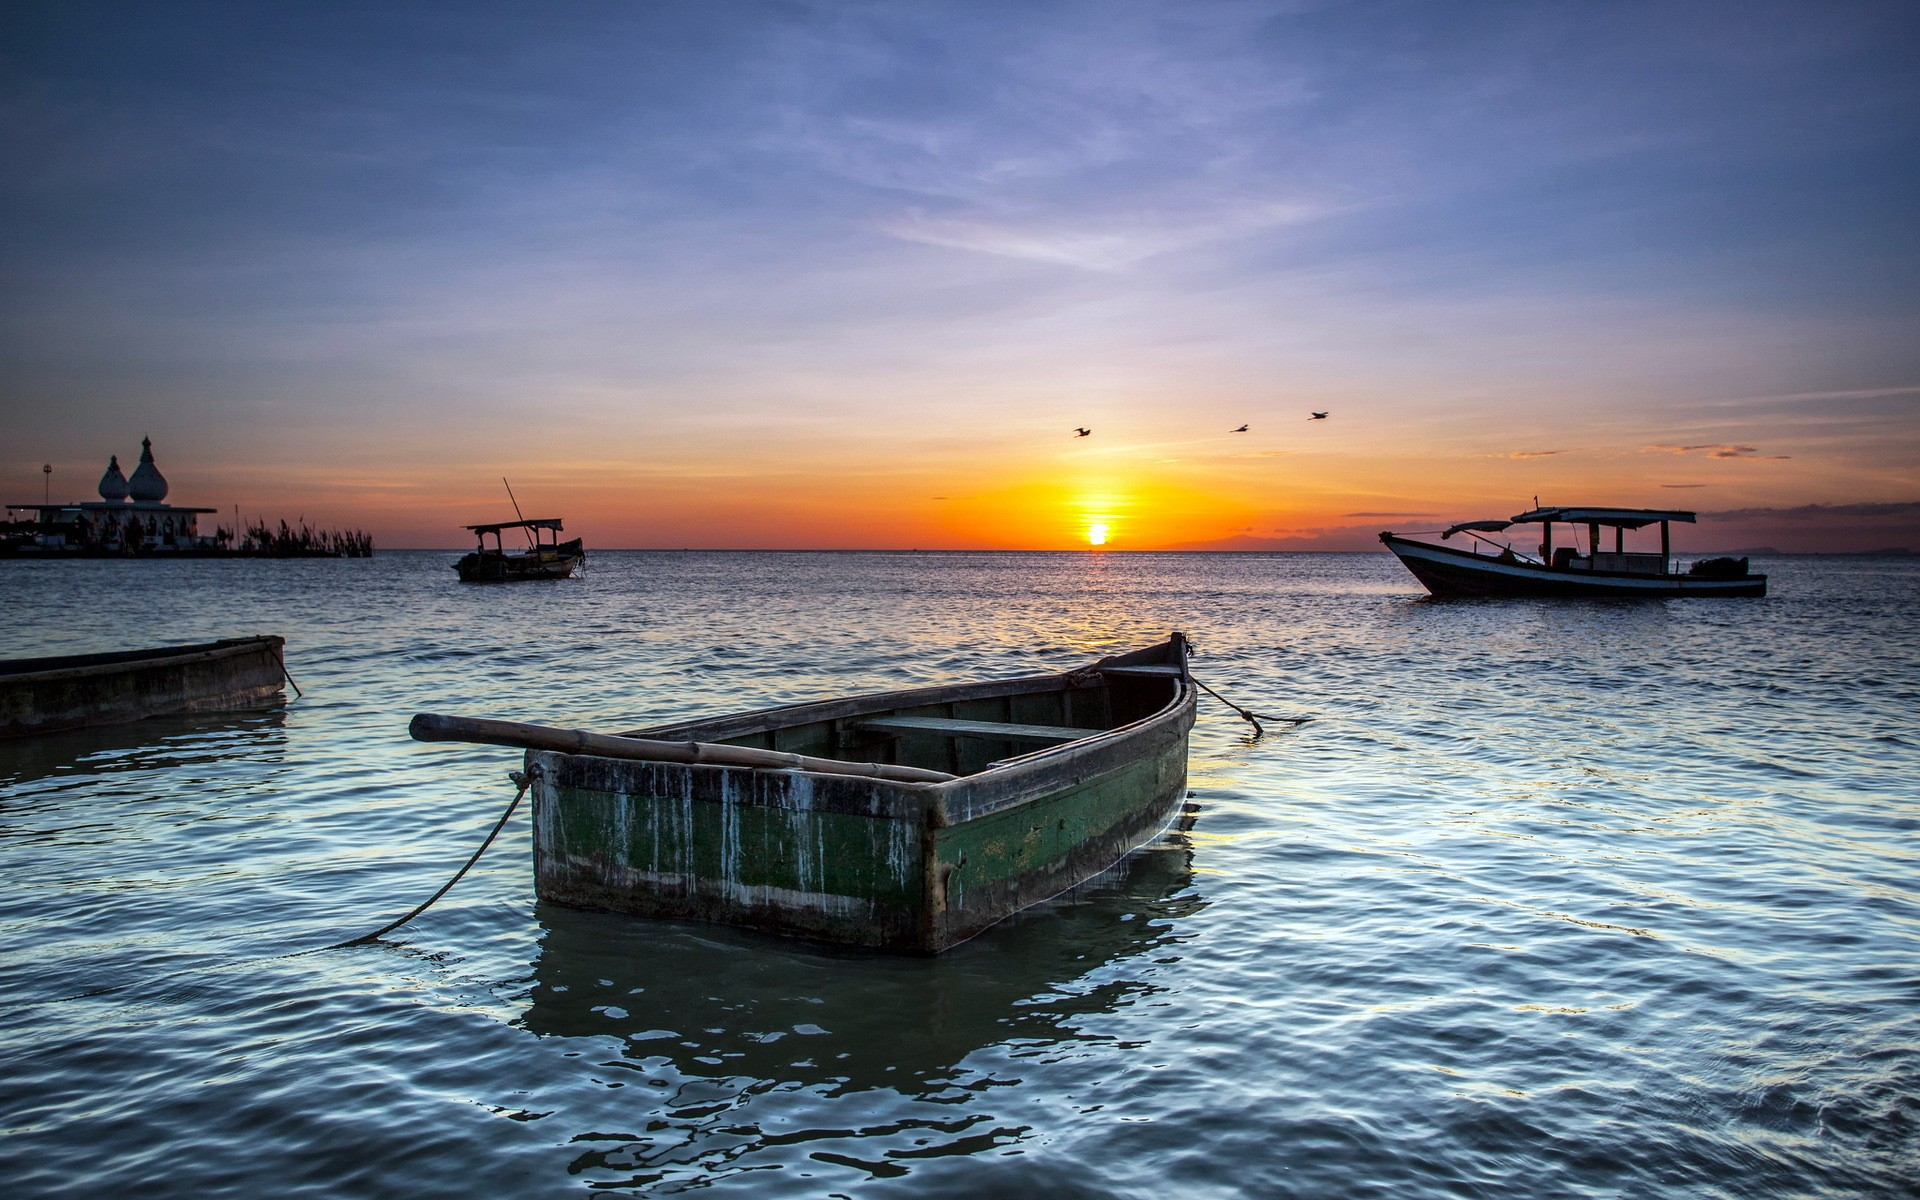 Sunsets: Sunrise Boat Ocean Peaceful Clouds Lovely Nature Sea Boats ...